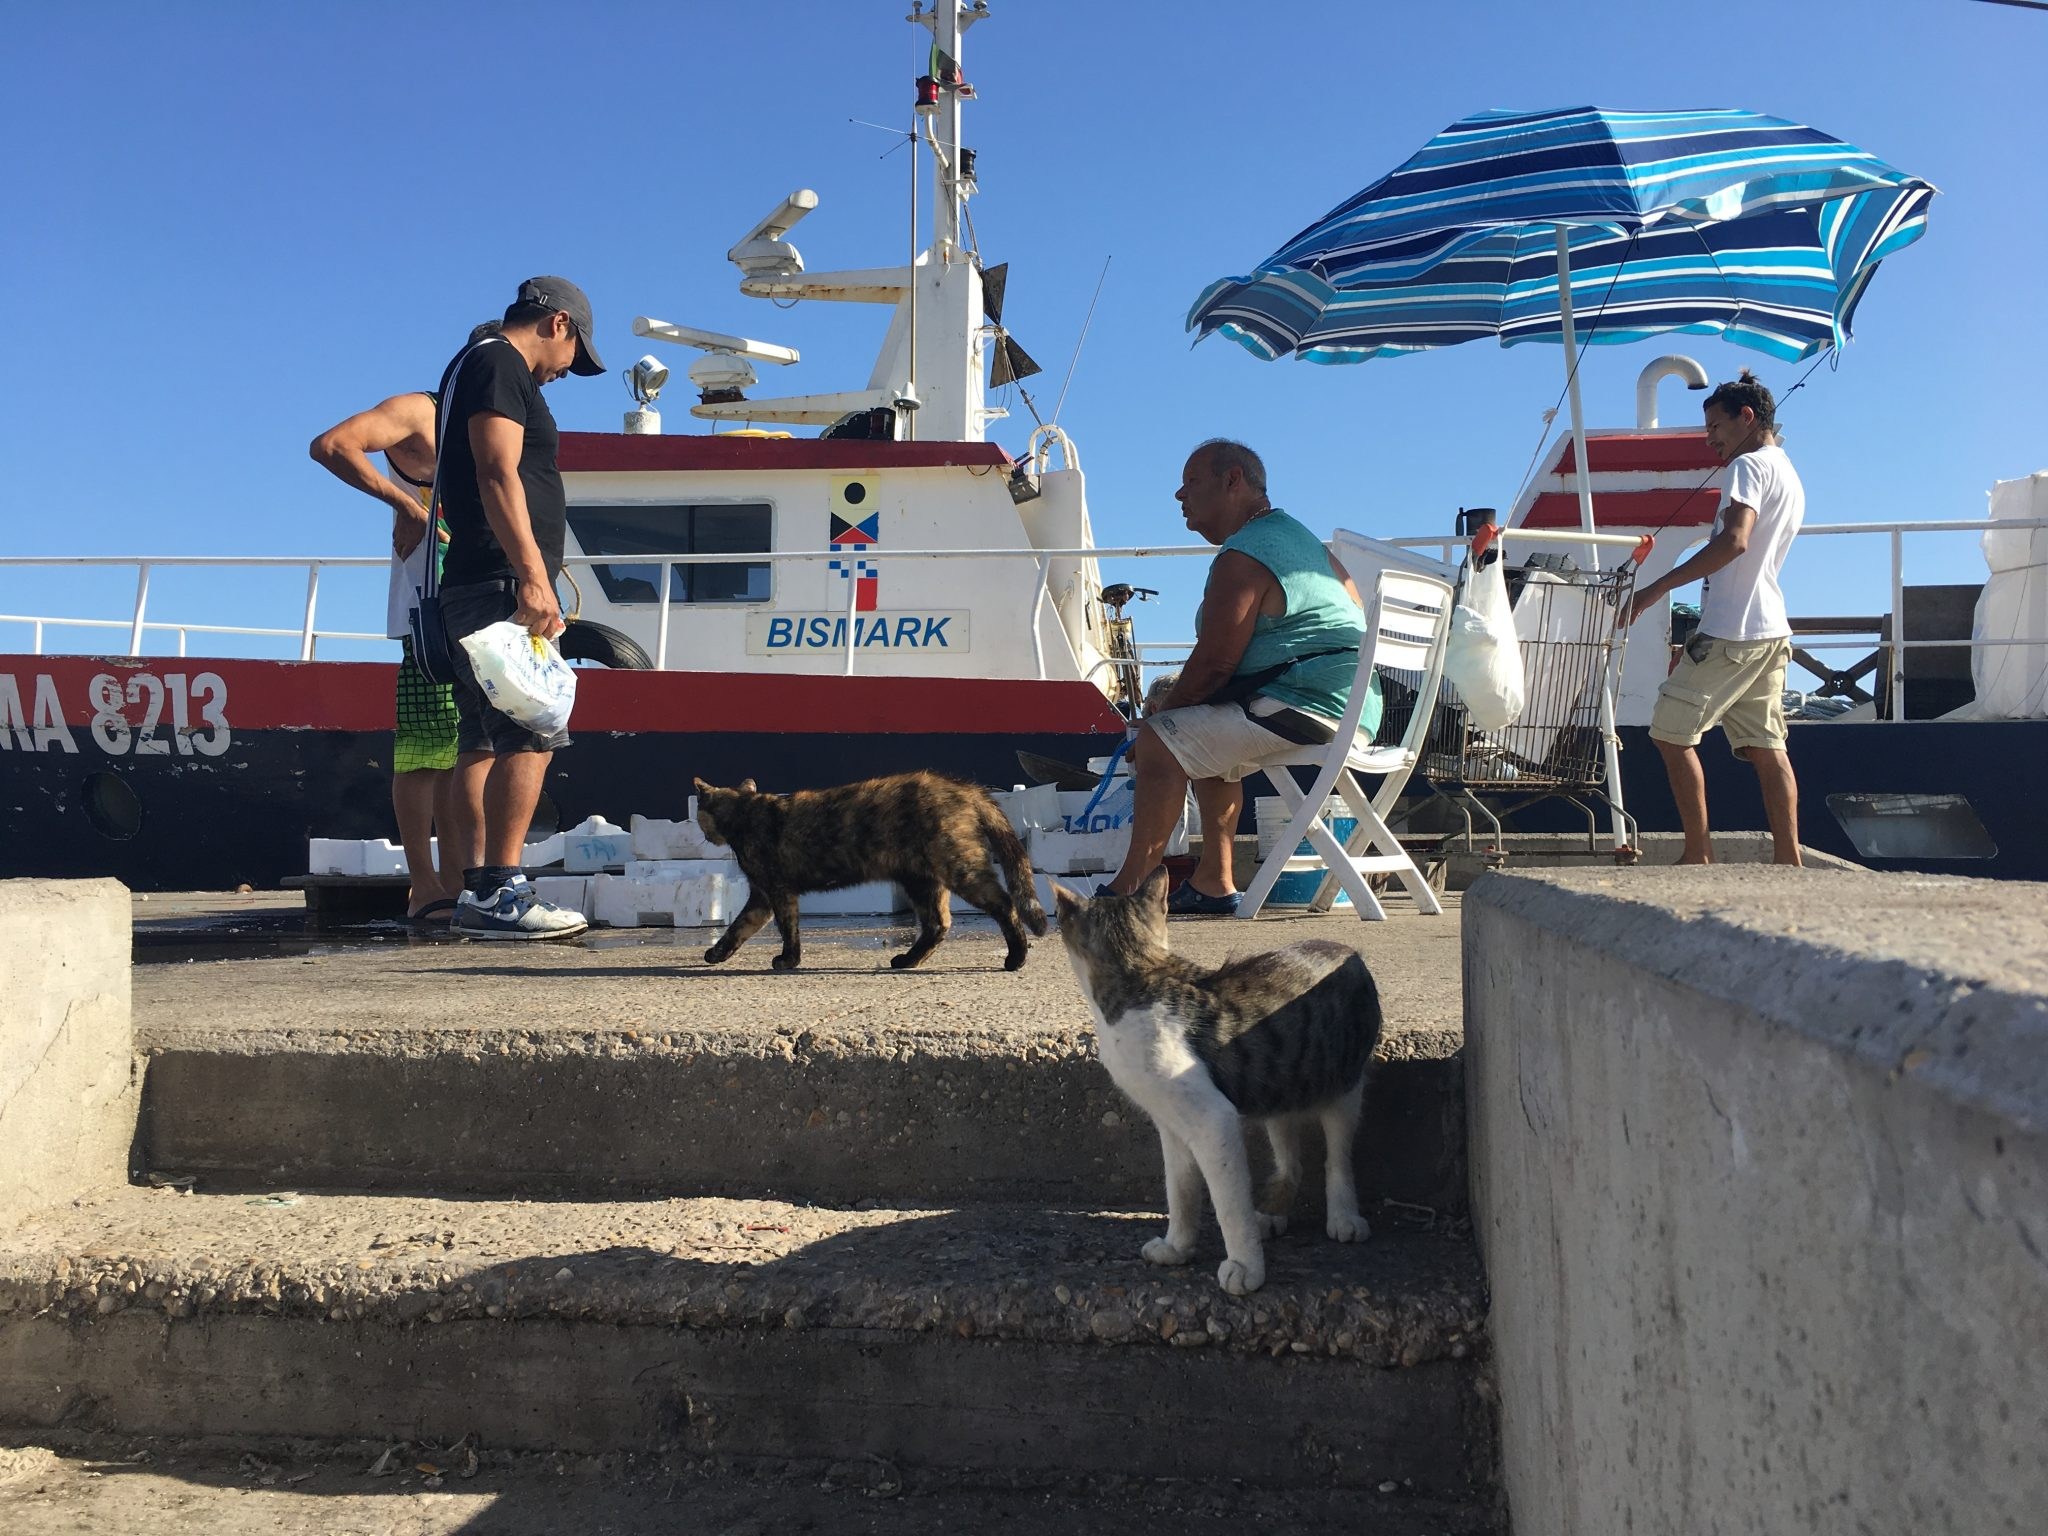 Customers - of the two legged and four legged variety - seeking good deals at Fiumicino's seafood market.